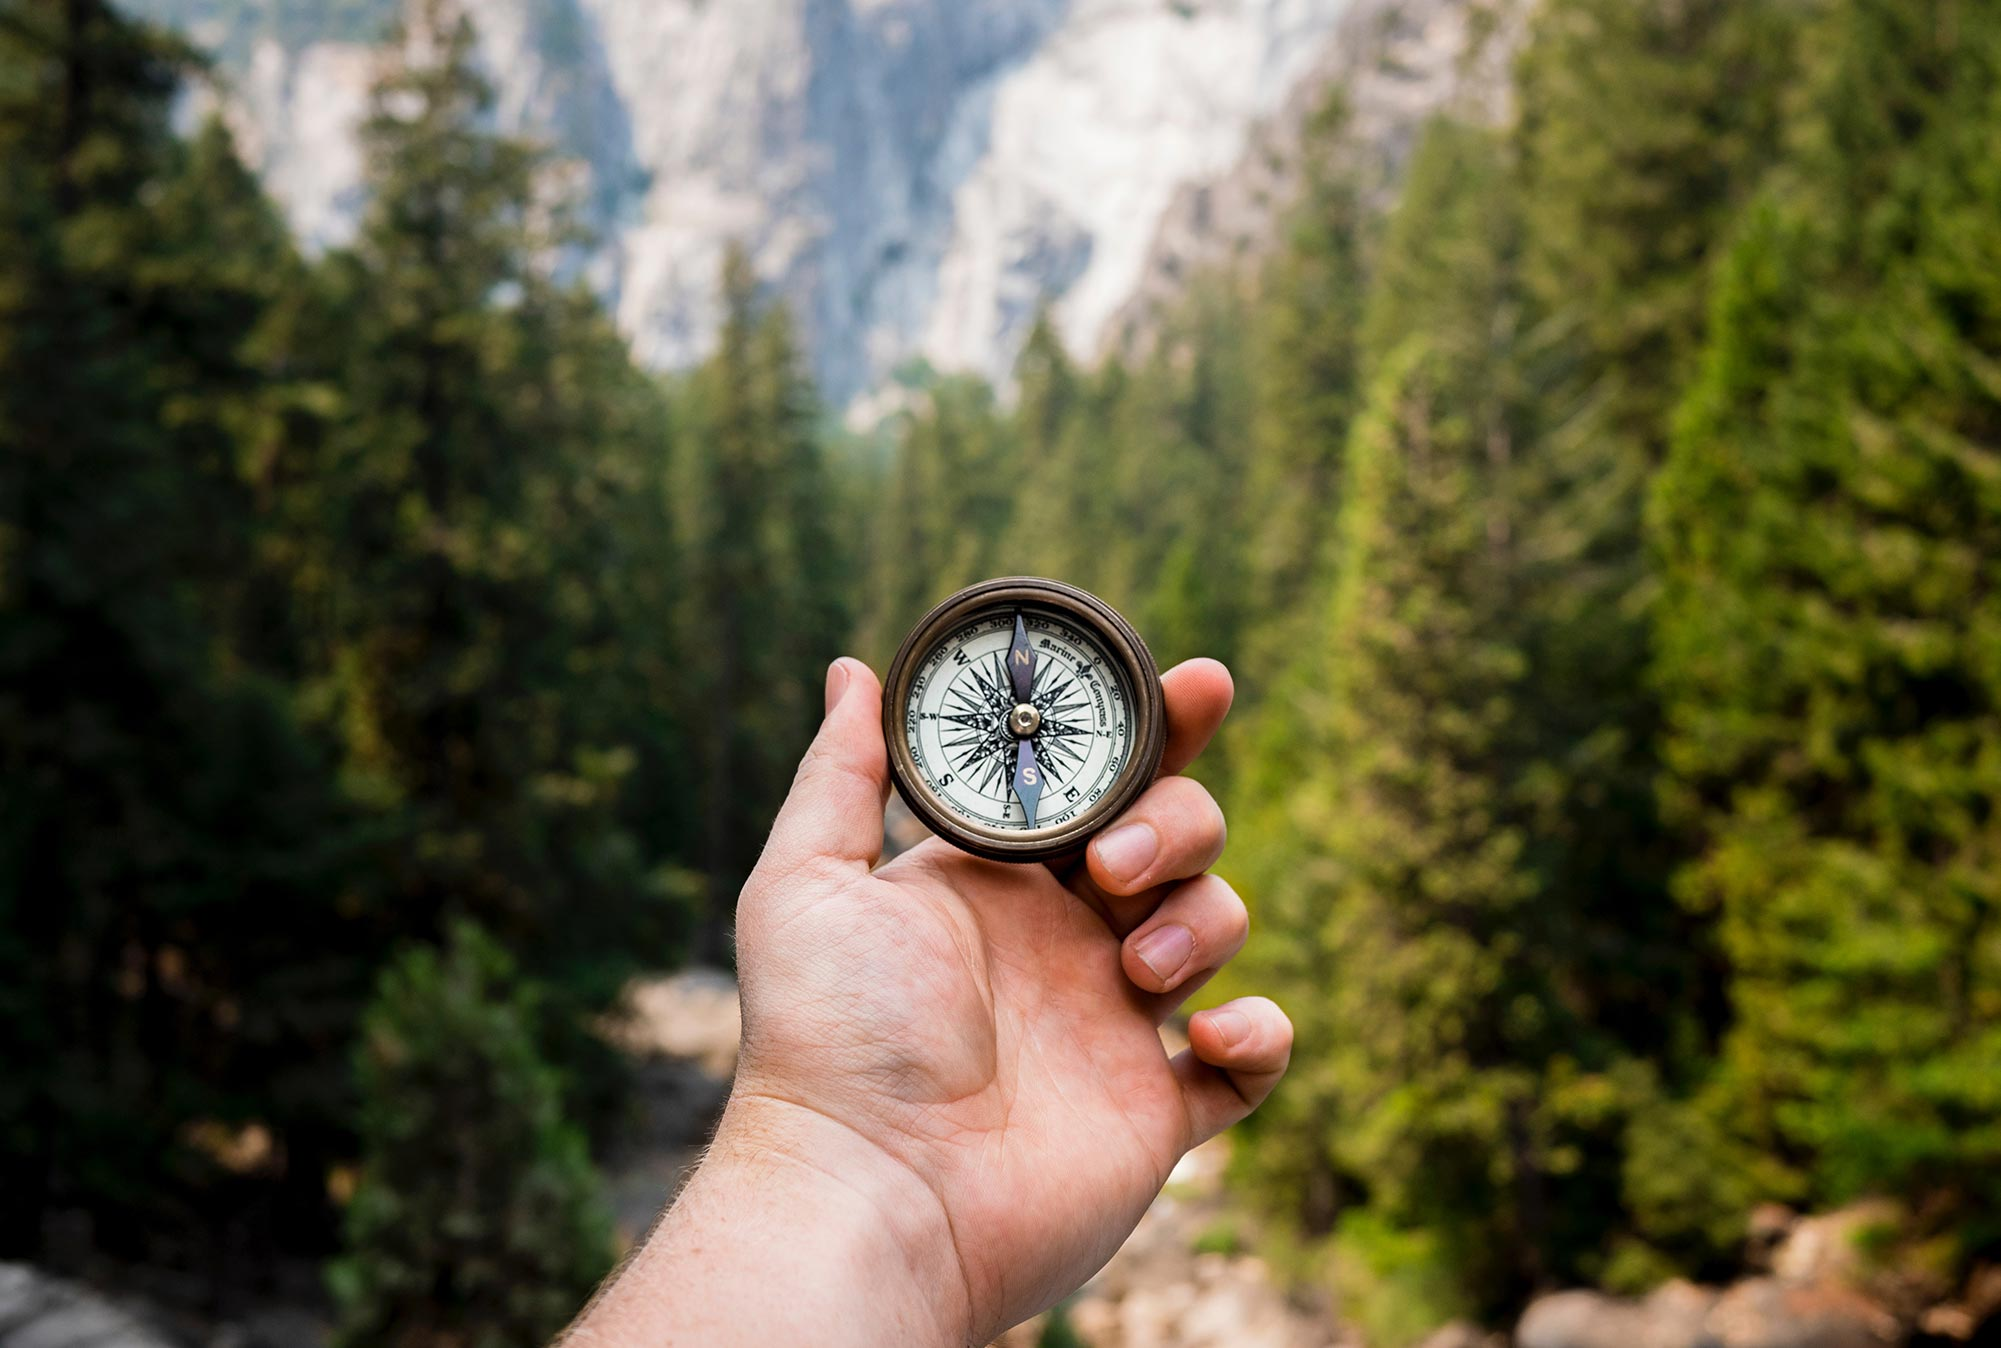 Hand holding a compass